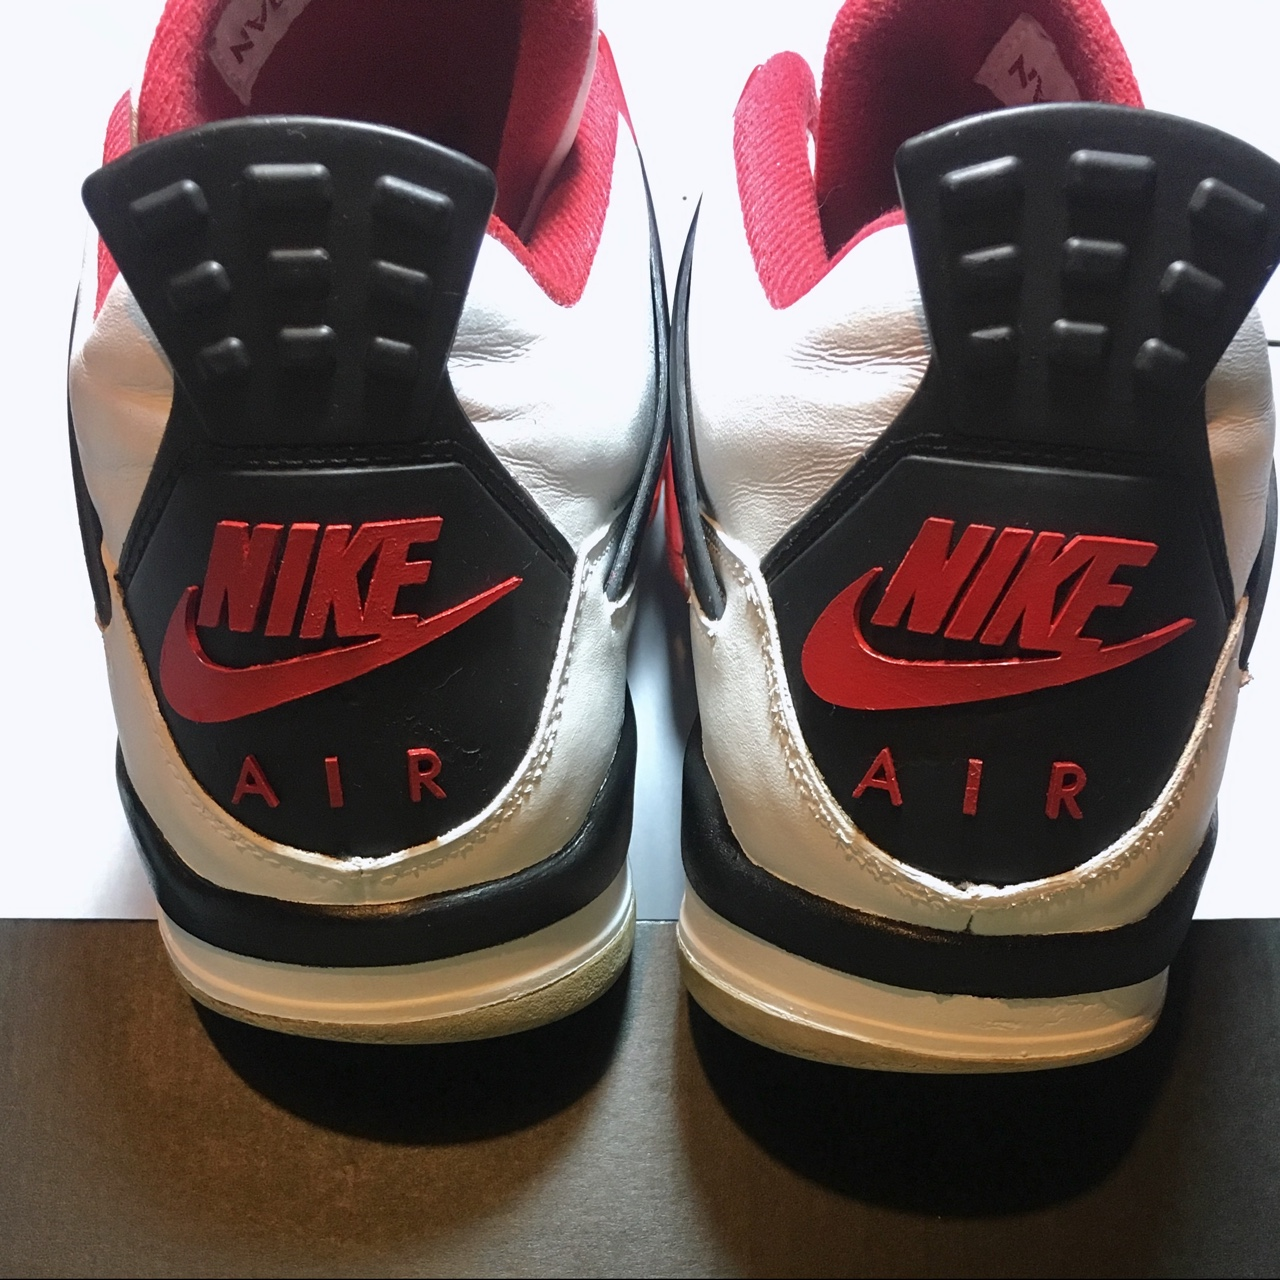 OG AIR Jordan 4 Fire Red 2012. AIR Jordan Tab has Depop